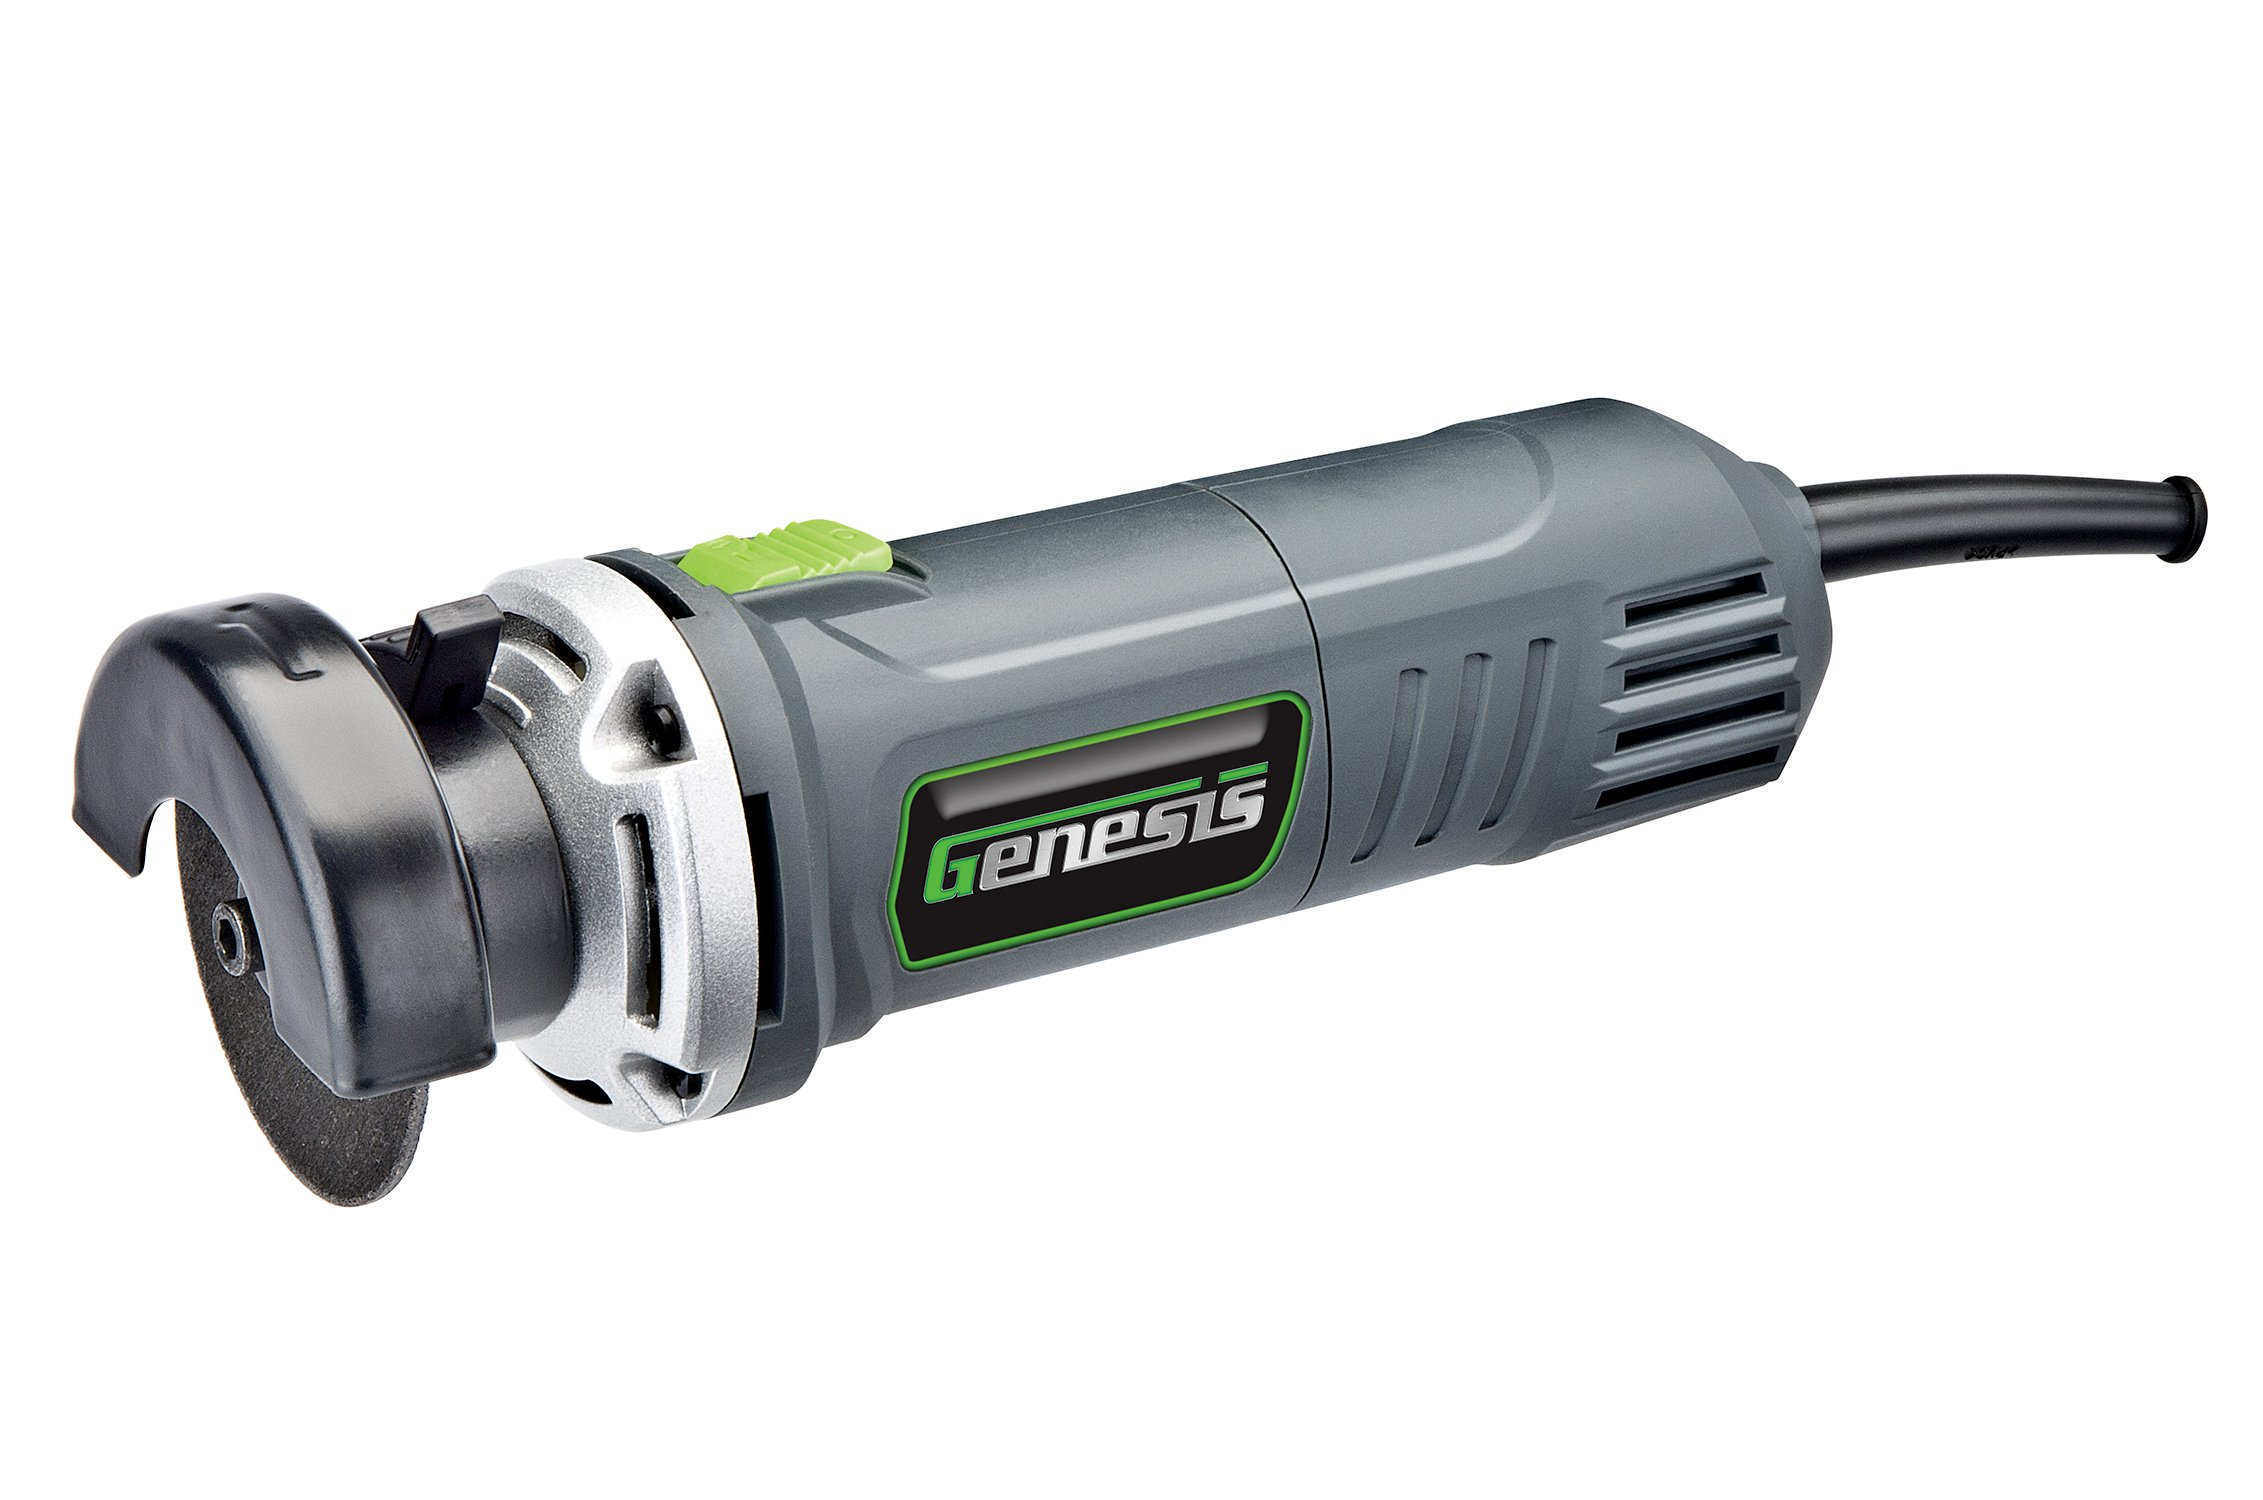 Genesis GCOT335 3 In. 3.5 Amp High Speed Corded Cut Off Tool,